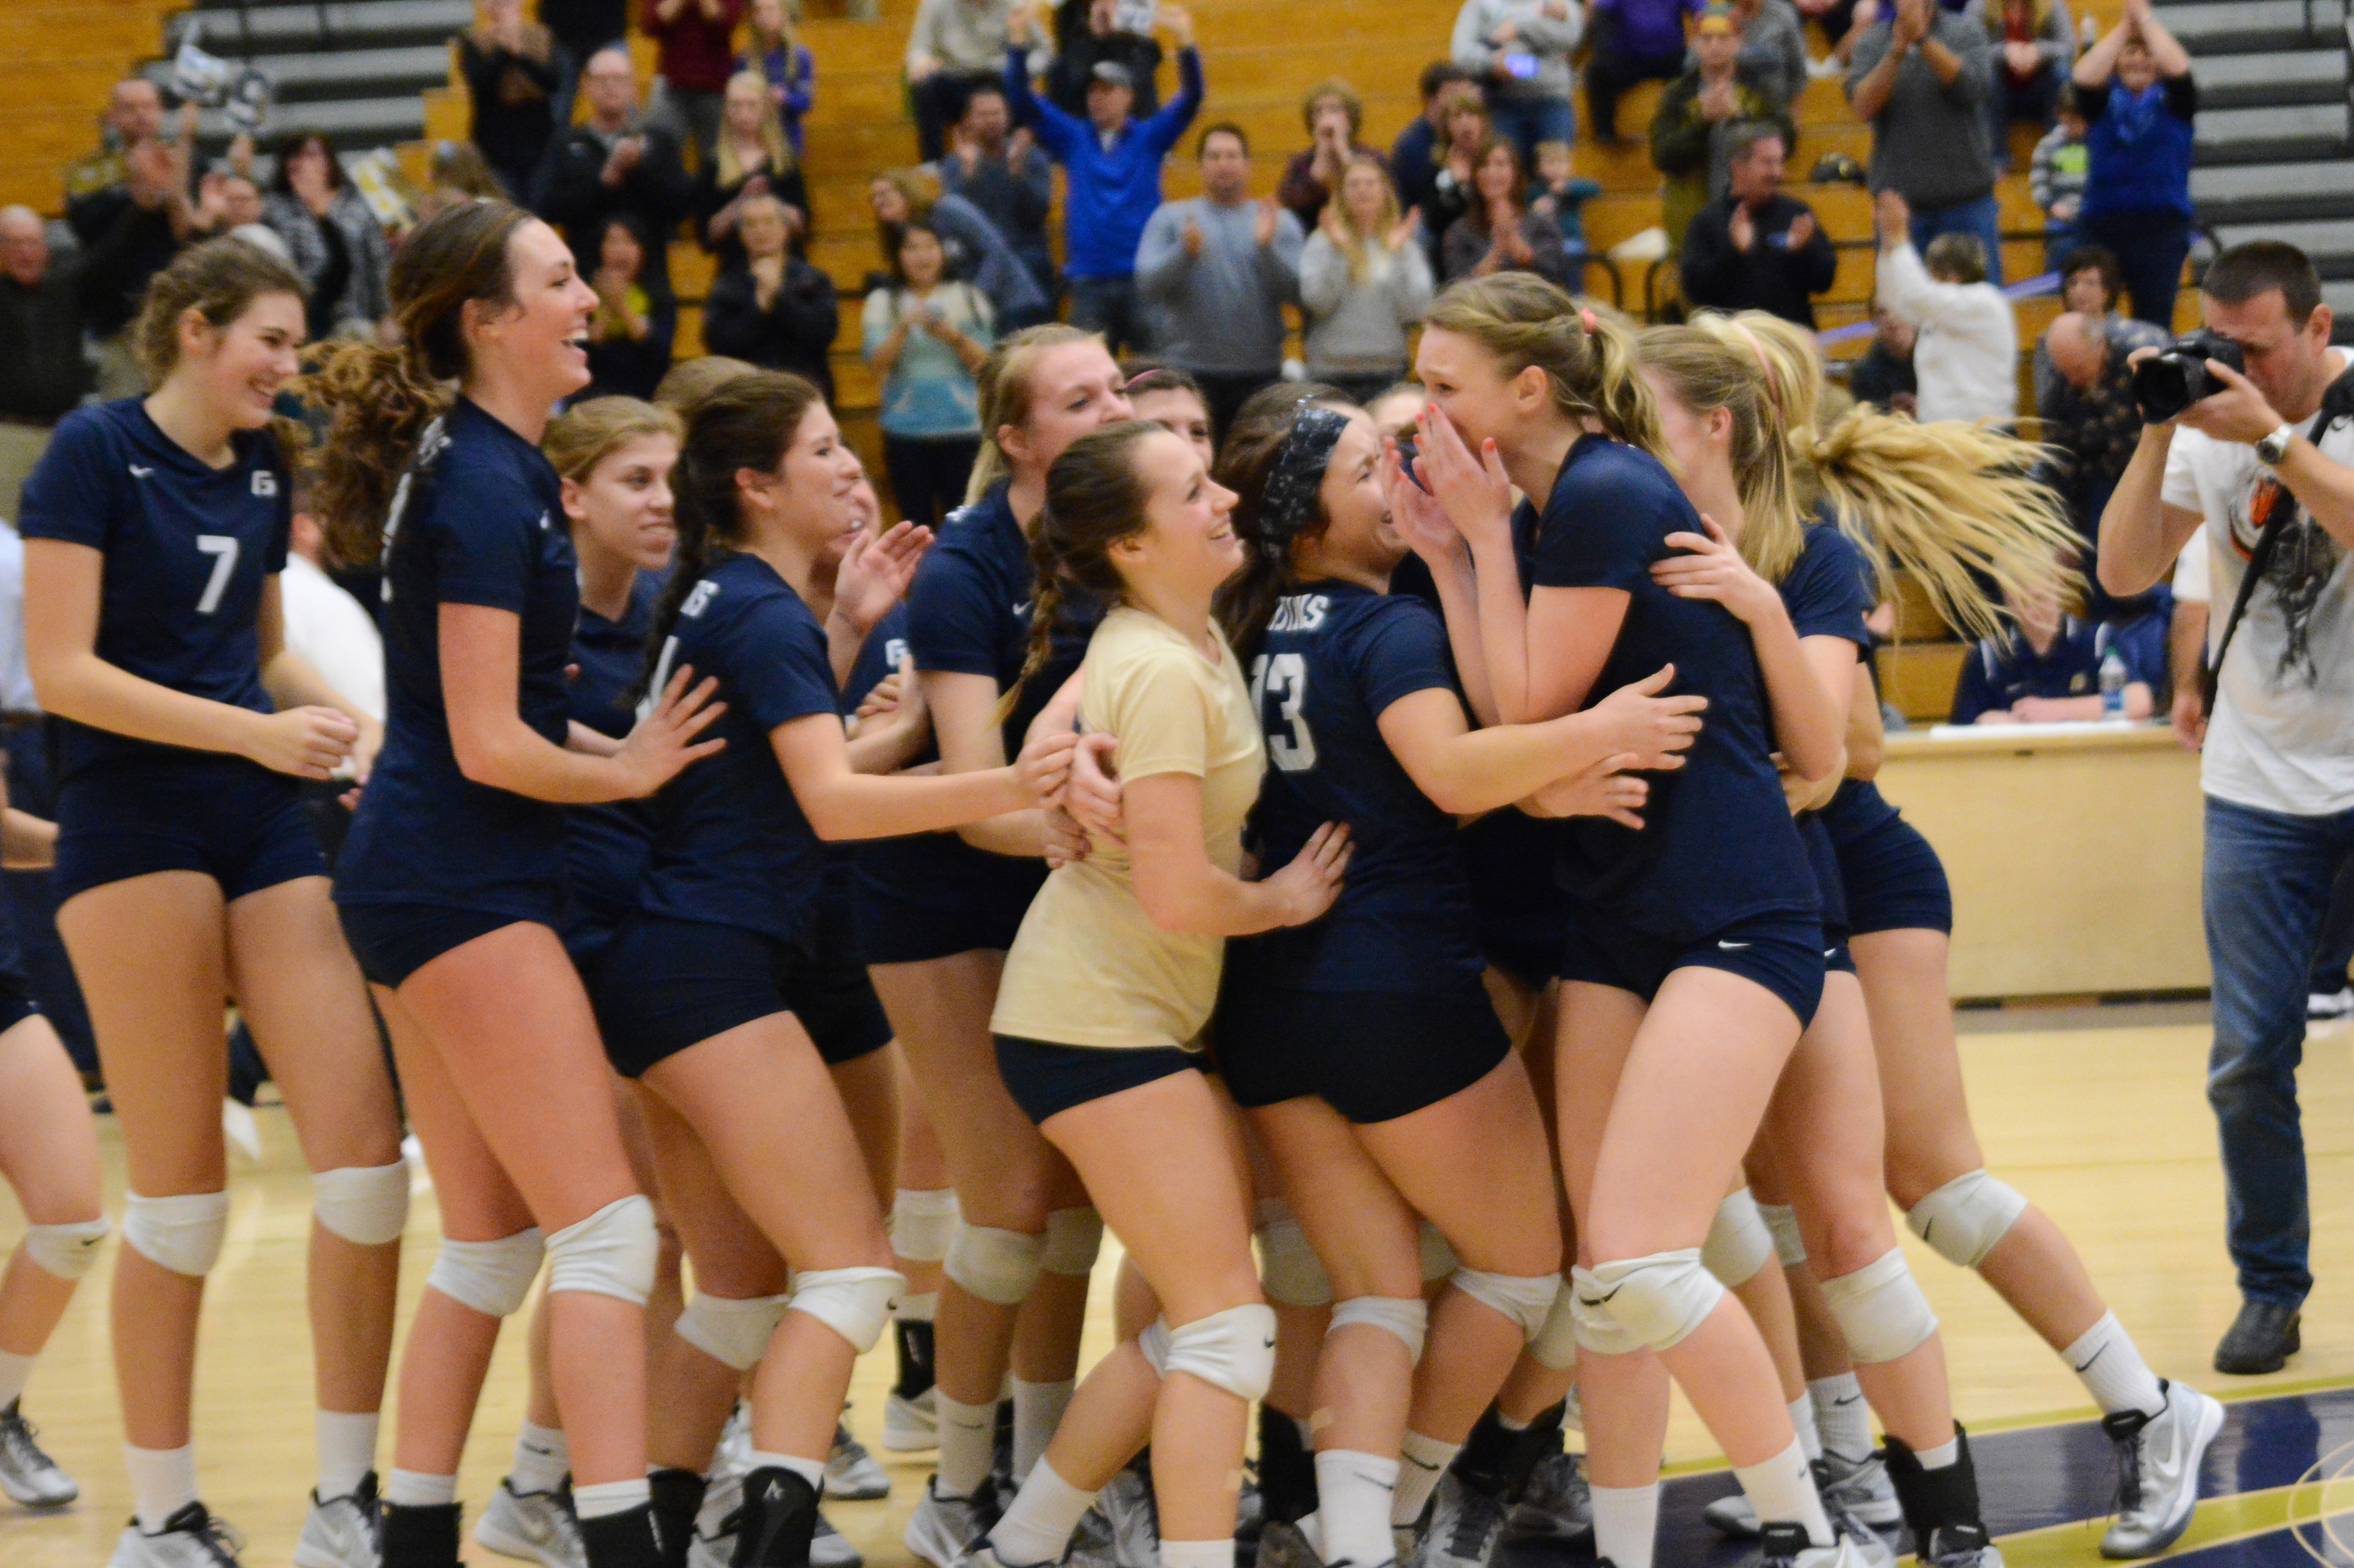 Volleyball 2015: The Season in Pictures